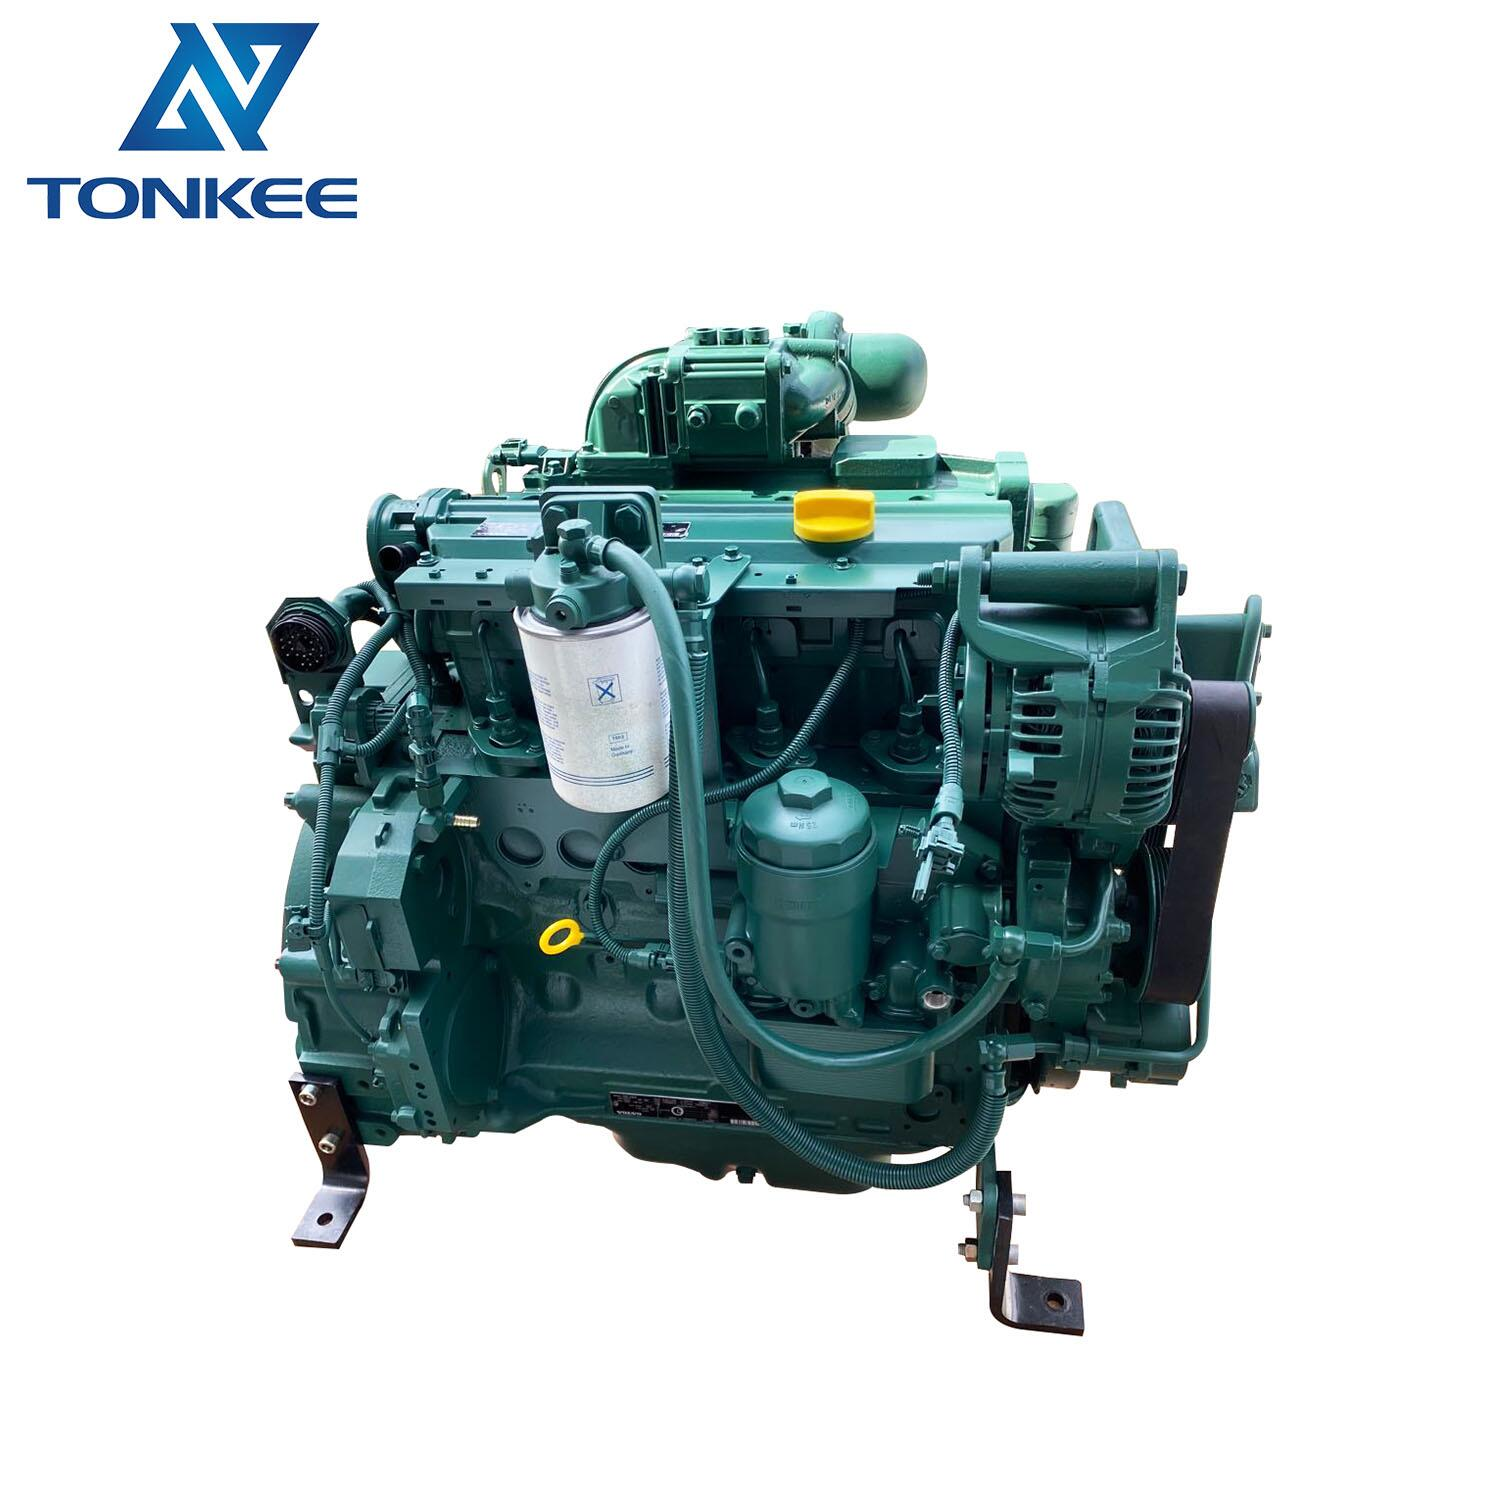 Construction Machinery Parts genuine used 14521398 VOE14521398 D4D ECE2 complete engine assy EC140 EC140B excavator engine assy